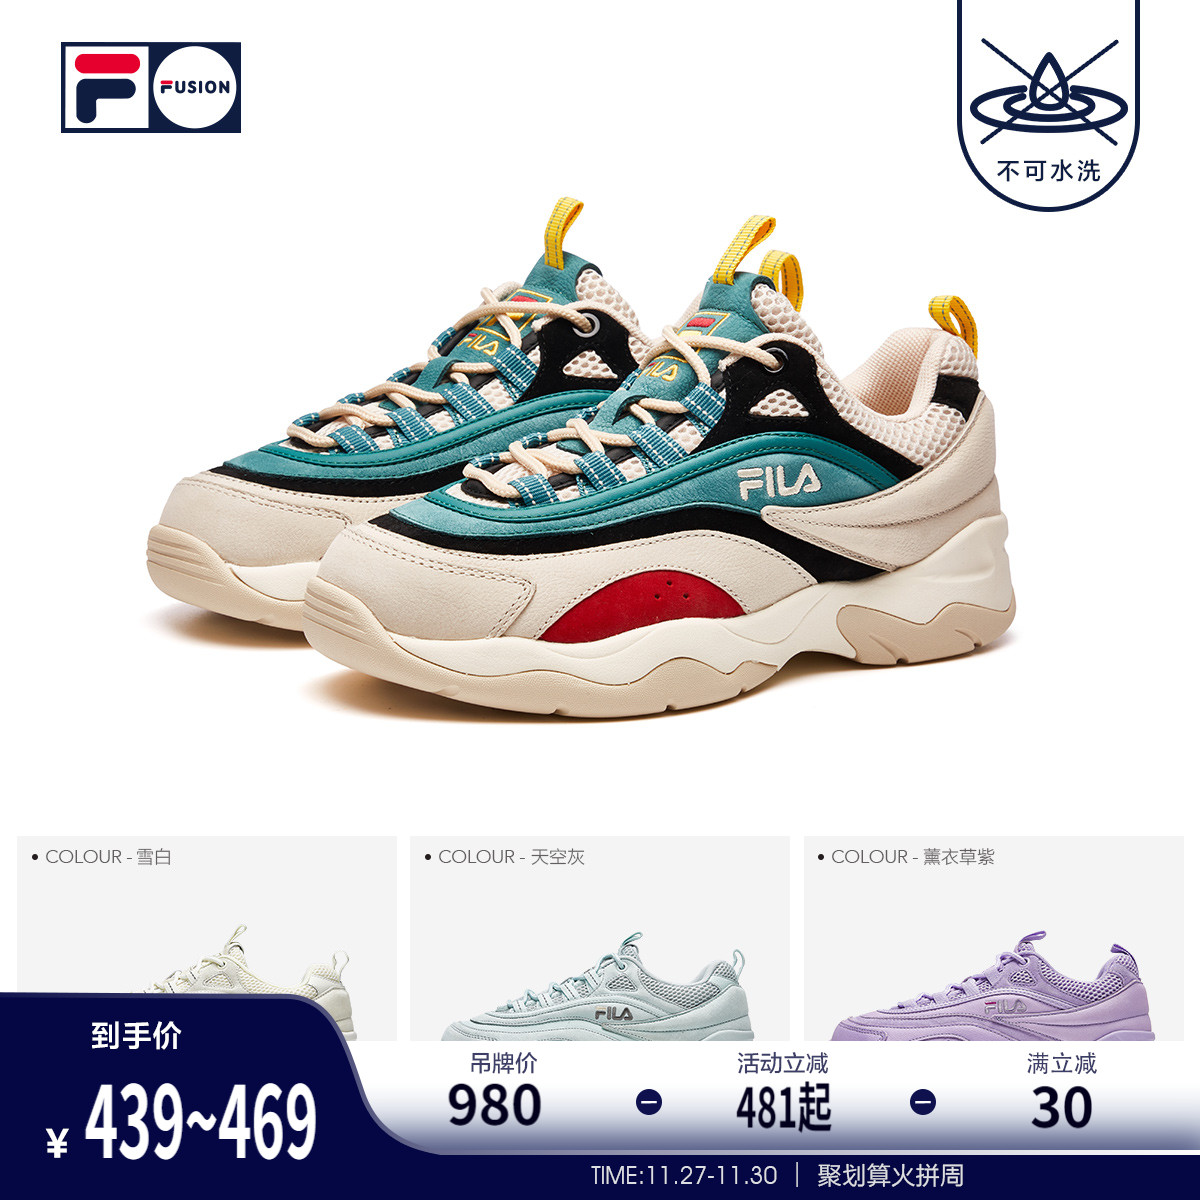 FILA Fila RAY women's shoes men's shoes old shoes purple 2020 autumn and winter couple casual sports breathable running shoes